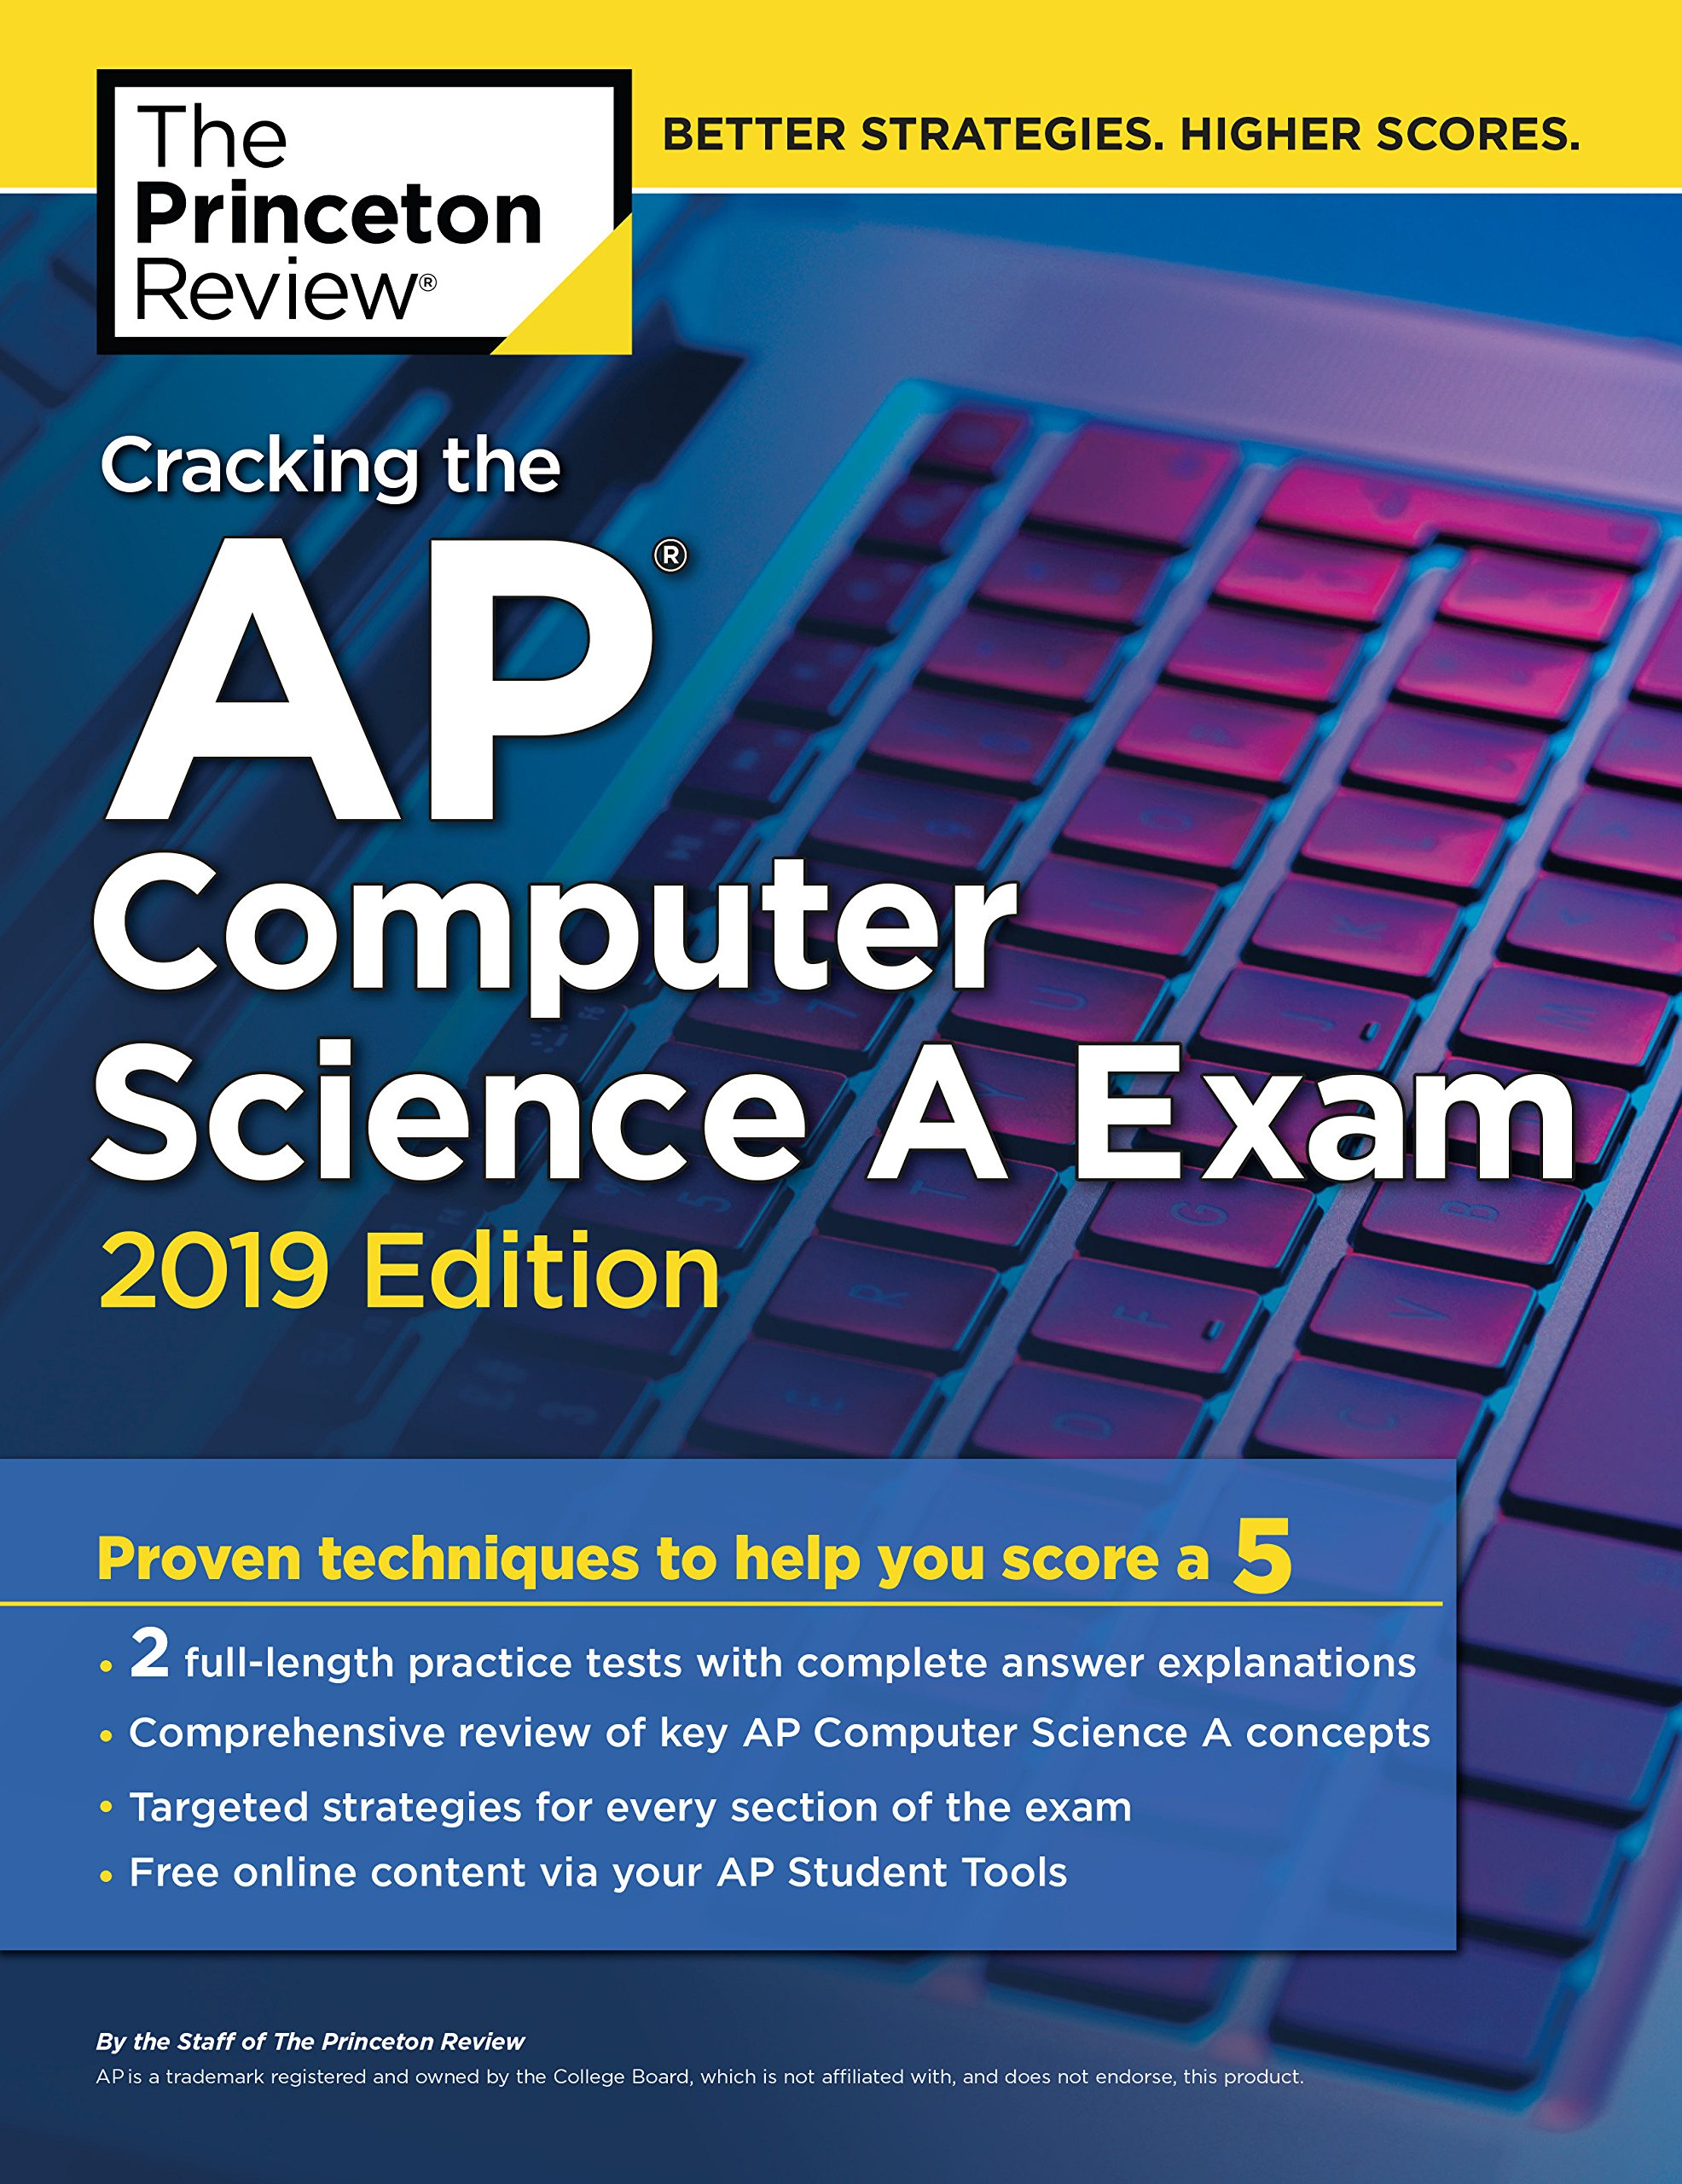 ... A Exam, 2019 Edition: Practice Tests & Proven Techniques to Help You  Score a 5 (College Test Preparation) (9781524758011): Princeton Review:  Books